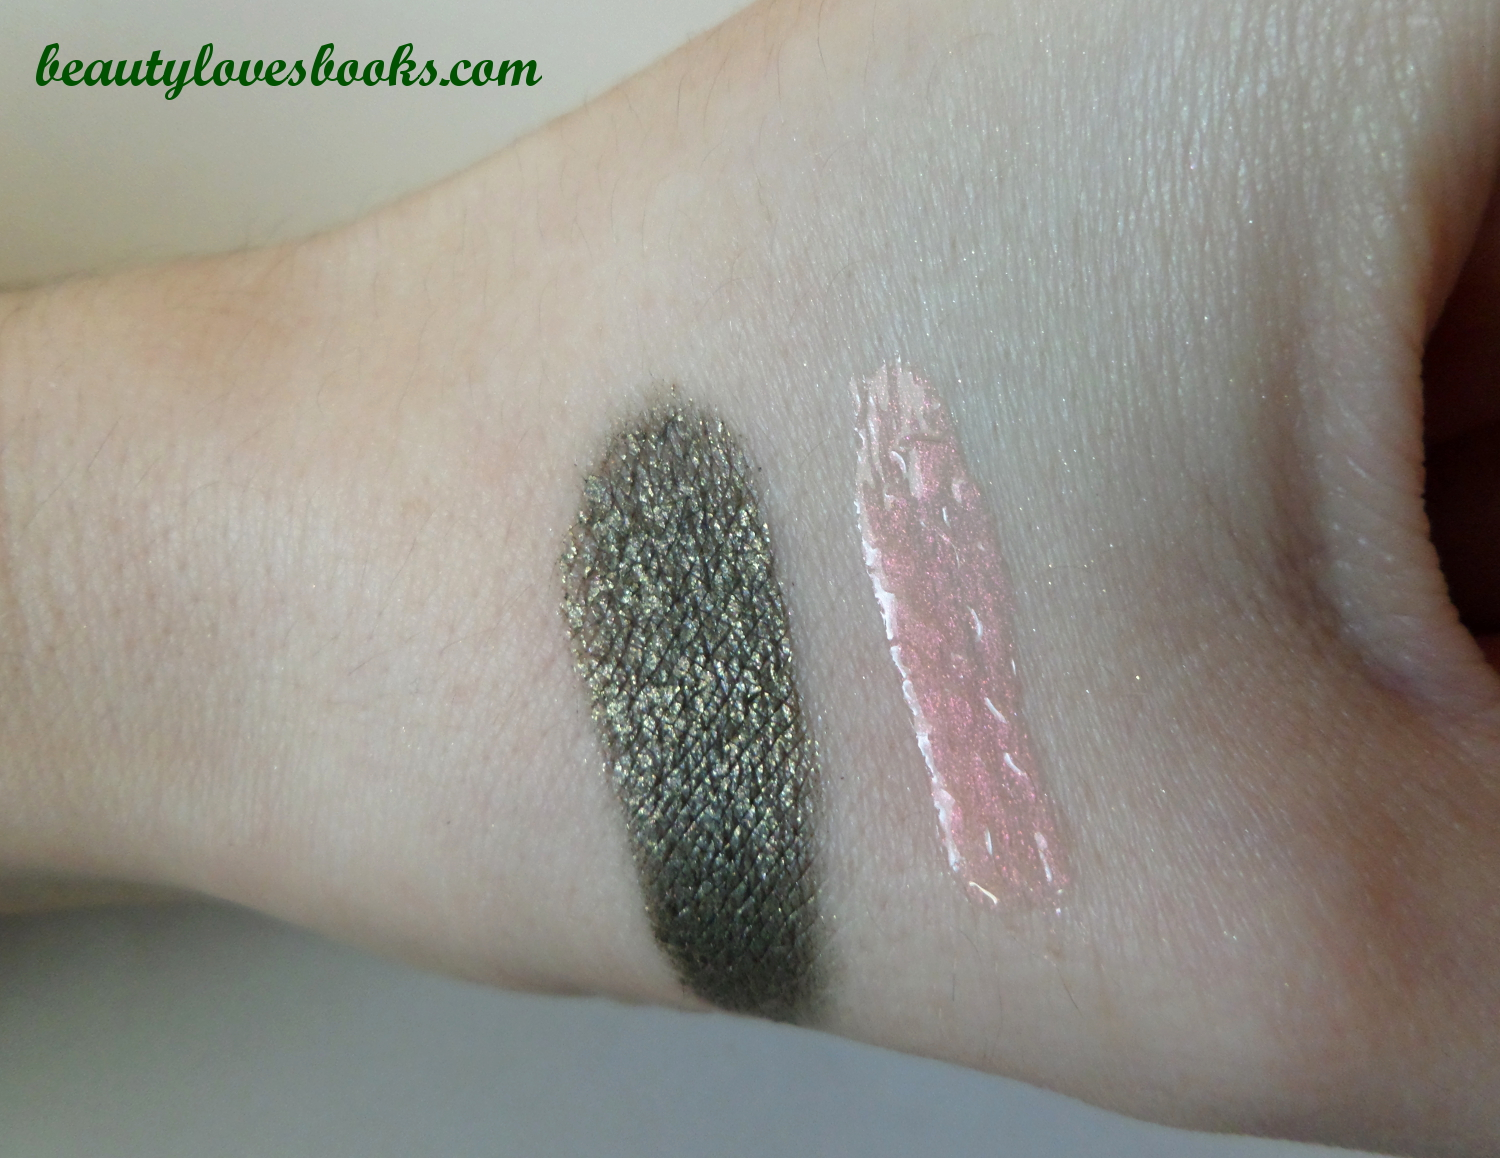 Illamasqua Vintage Metallix eyeshadow in Biblot and Illamasqua Sheer Lipgloss in Exquisite, swatches